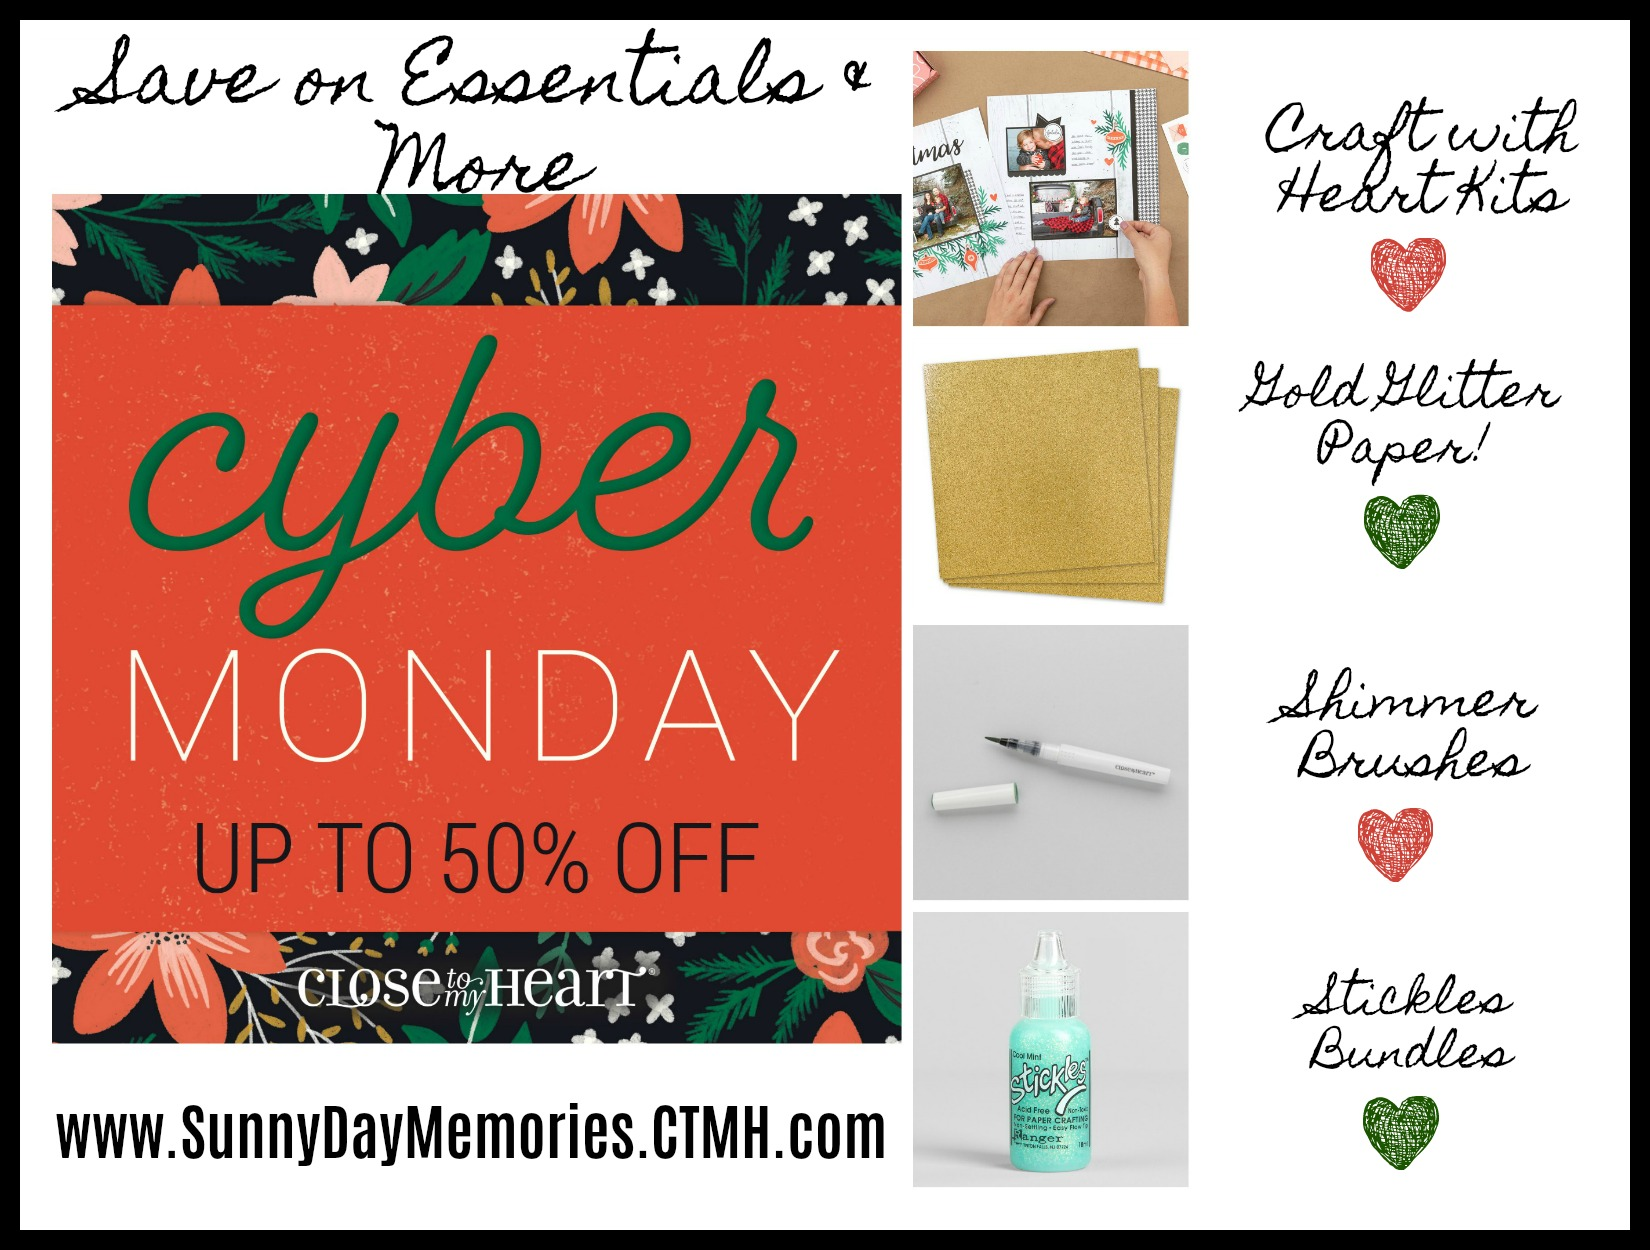 2019 CTMH Cyber Monday Flash Sale